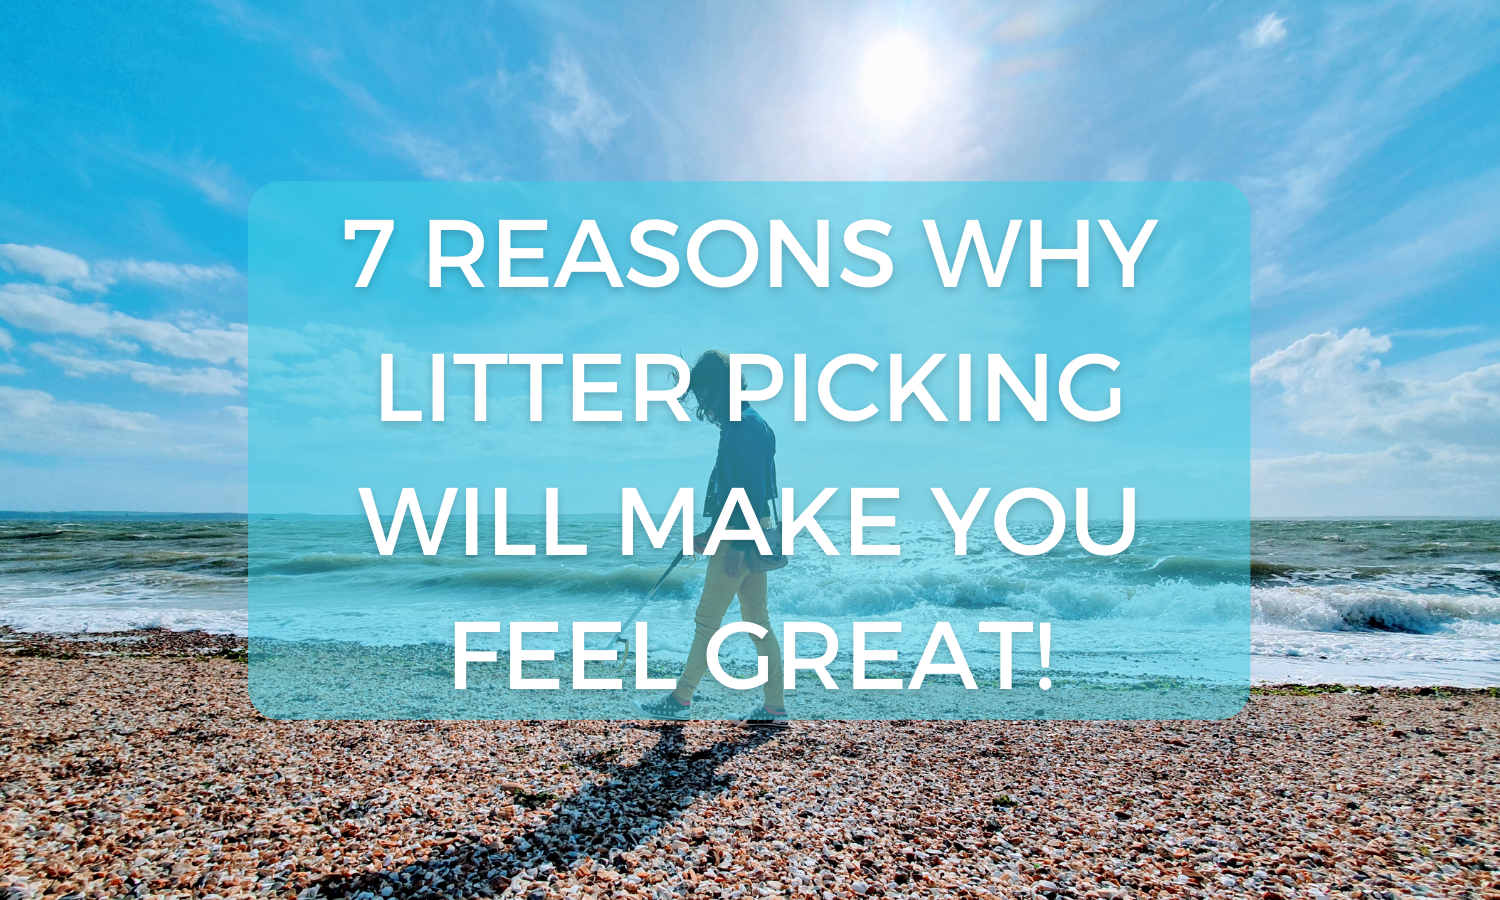 7 Reasons Why Litter Picking Will Make You Feel Great